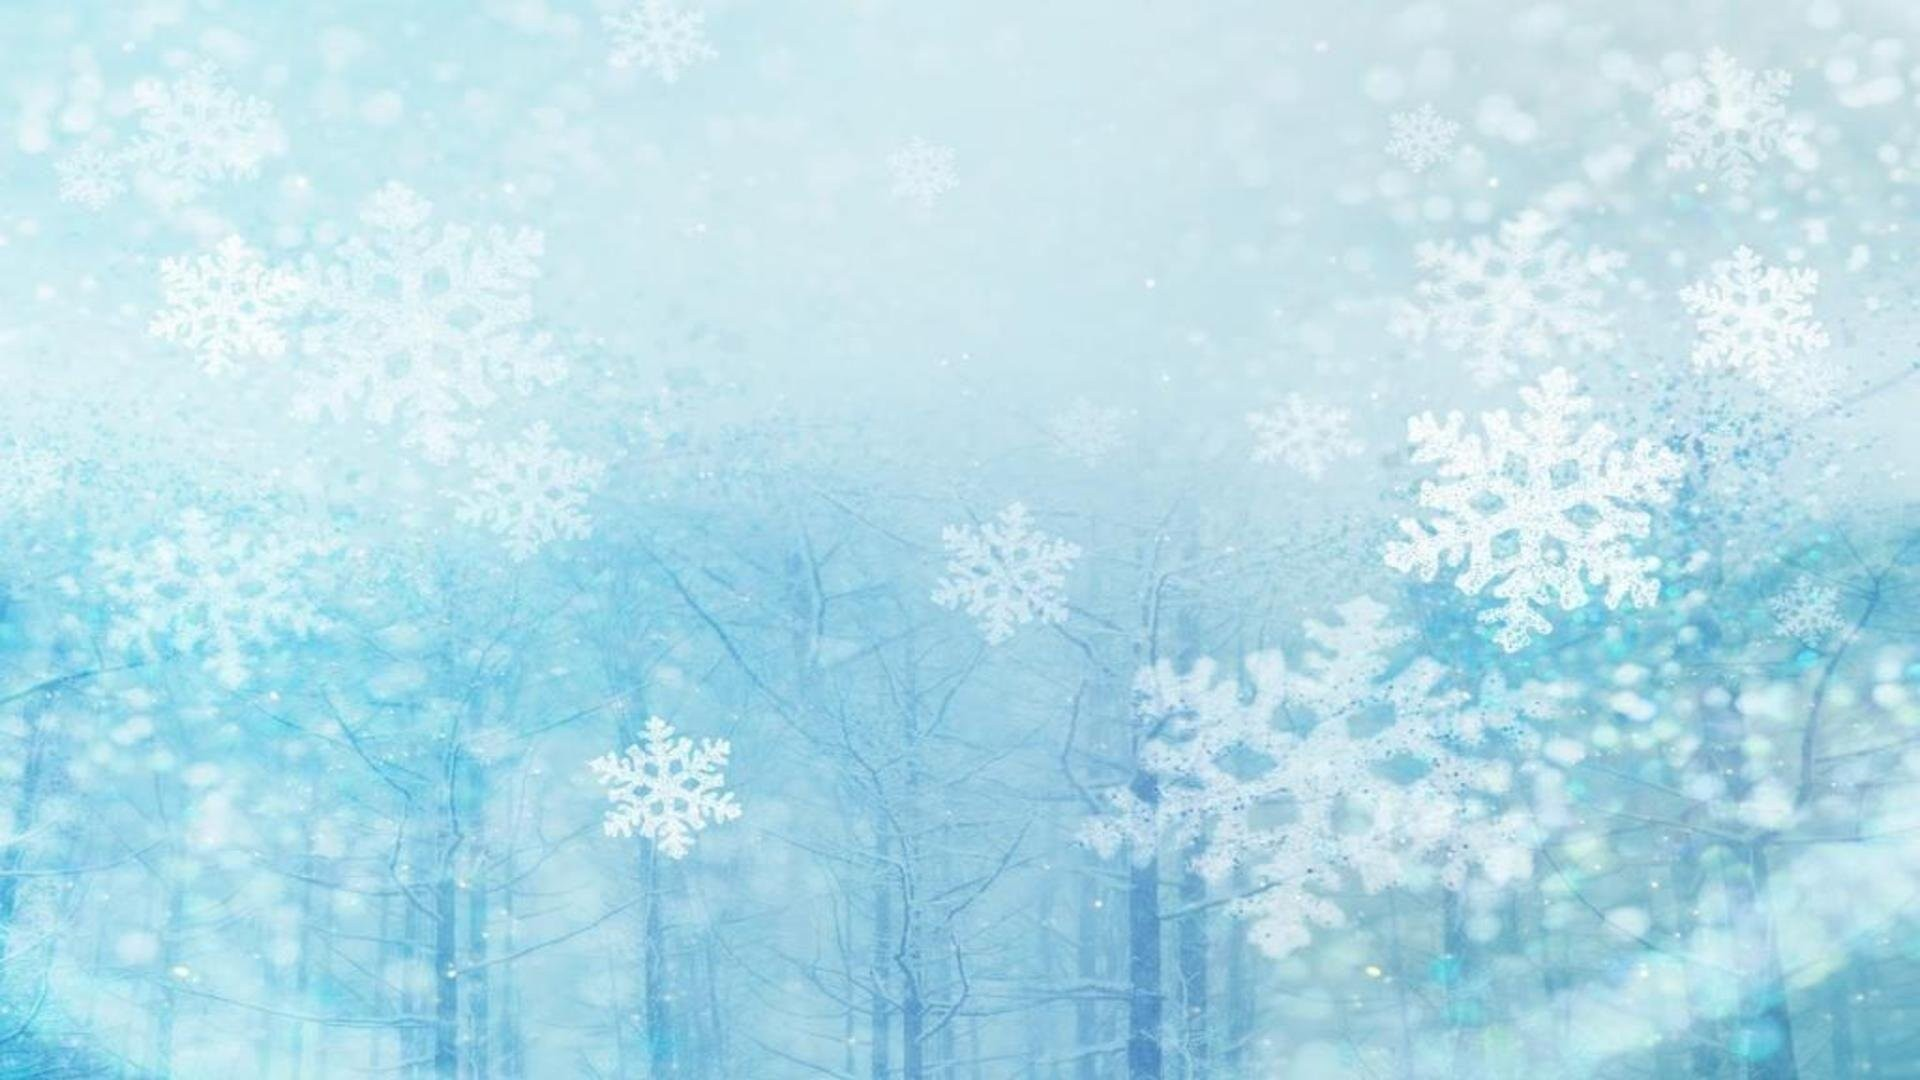 White Christmas Background Download Free Hd Wallpapers